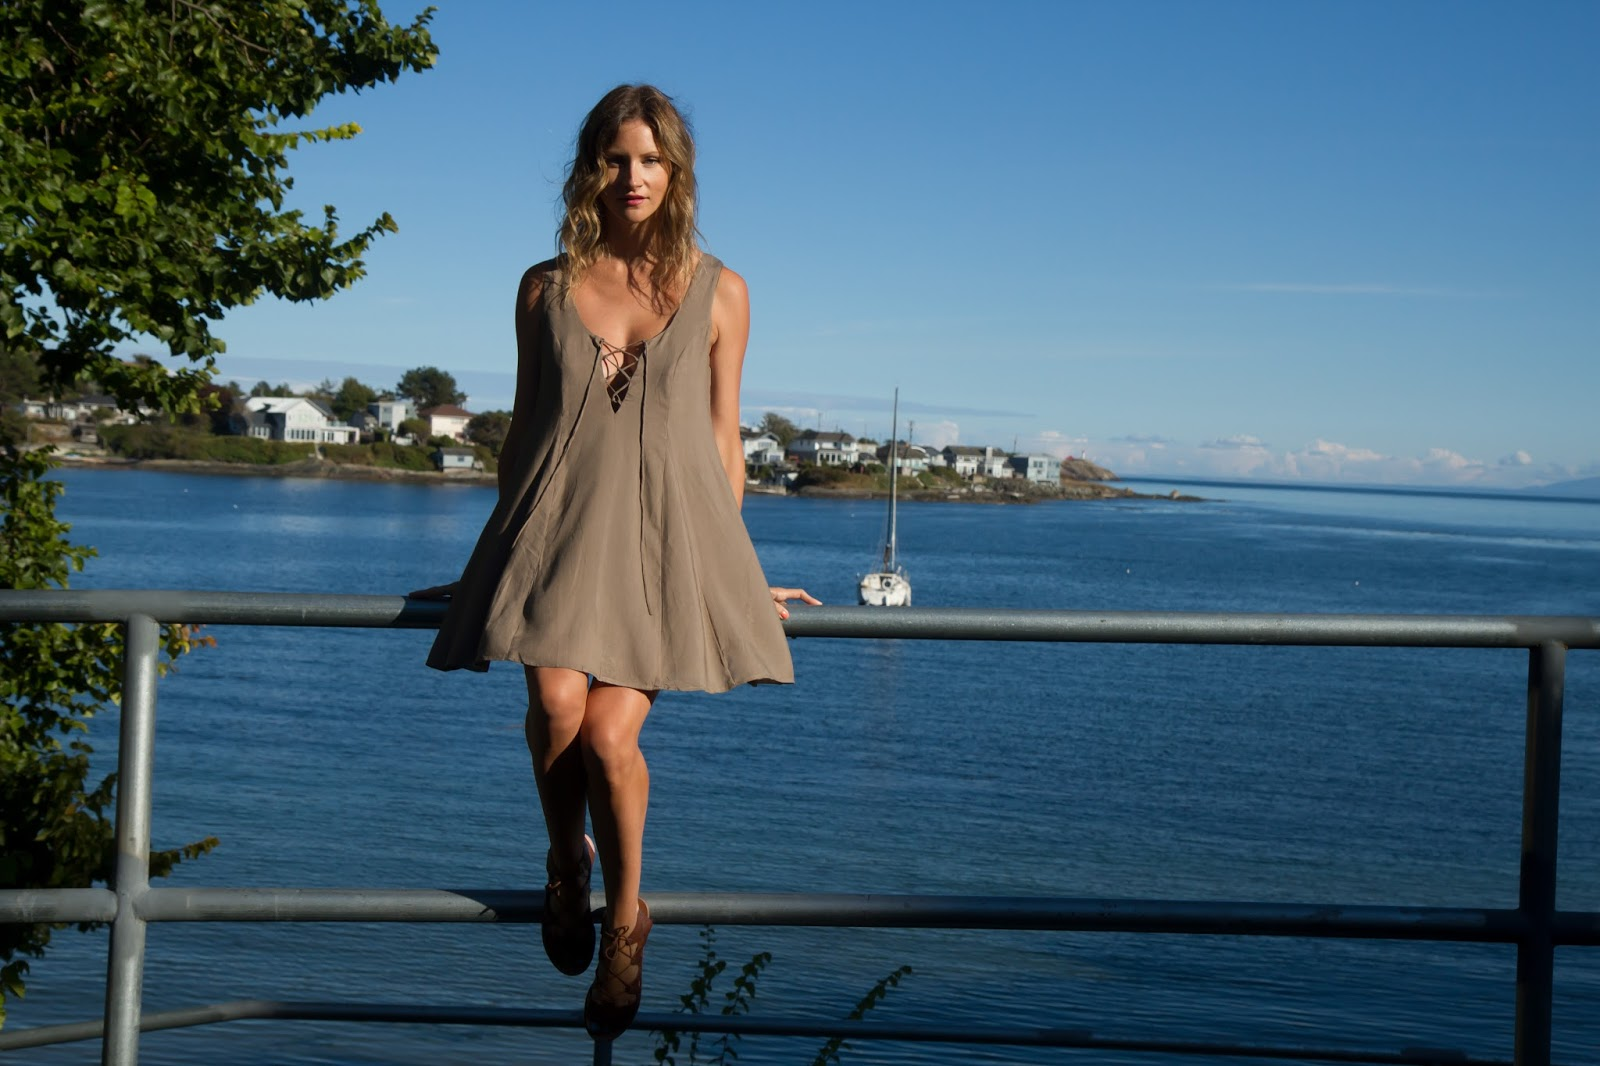 Fashion Blogger and Digital Nomad, Alison Hutchinson, in a Tobi Swing Dress